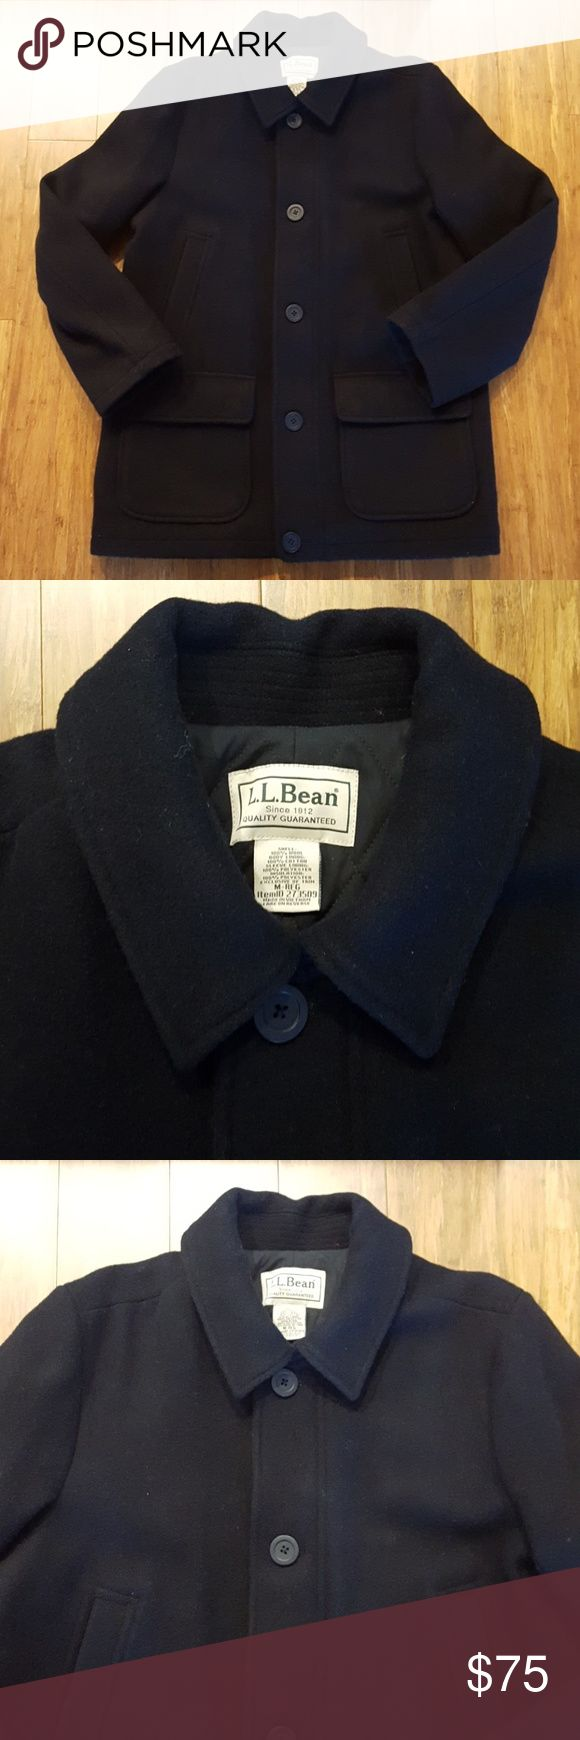 LL Bean men's wool coat GUC LL Bean men's wool coat. Zip and button closure. Two front hand pockets. Mild general wear, still good color and functional. Size medium. Measures approx 24.75 inches armpit to armpit, 33.5 top of shoulder to hem, 18.5 across shoulders, 26 top to bottom of sleeve. Exterior is 100% wool. Has Thinsulate insulation under. No trades or lowball offers pls. L.L. Bean Jackets & Coats Pea Coats